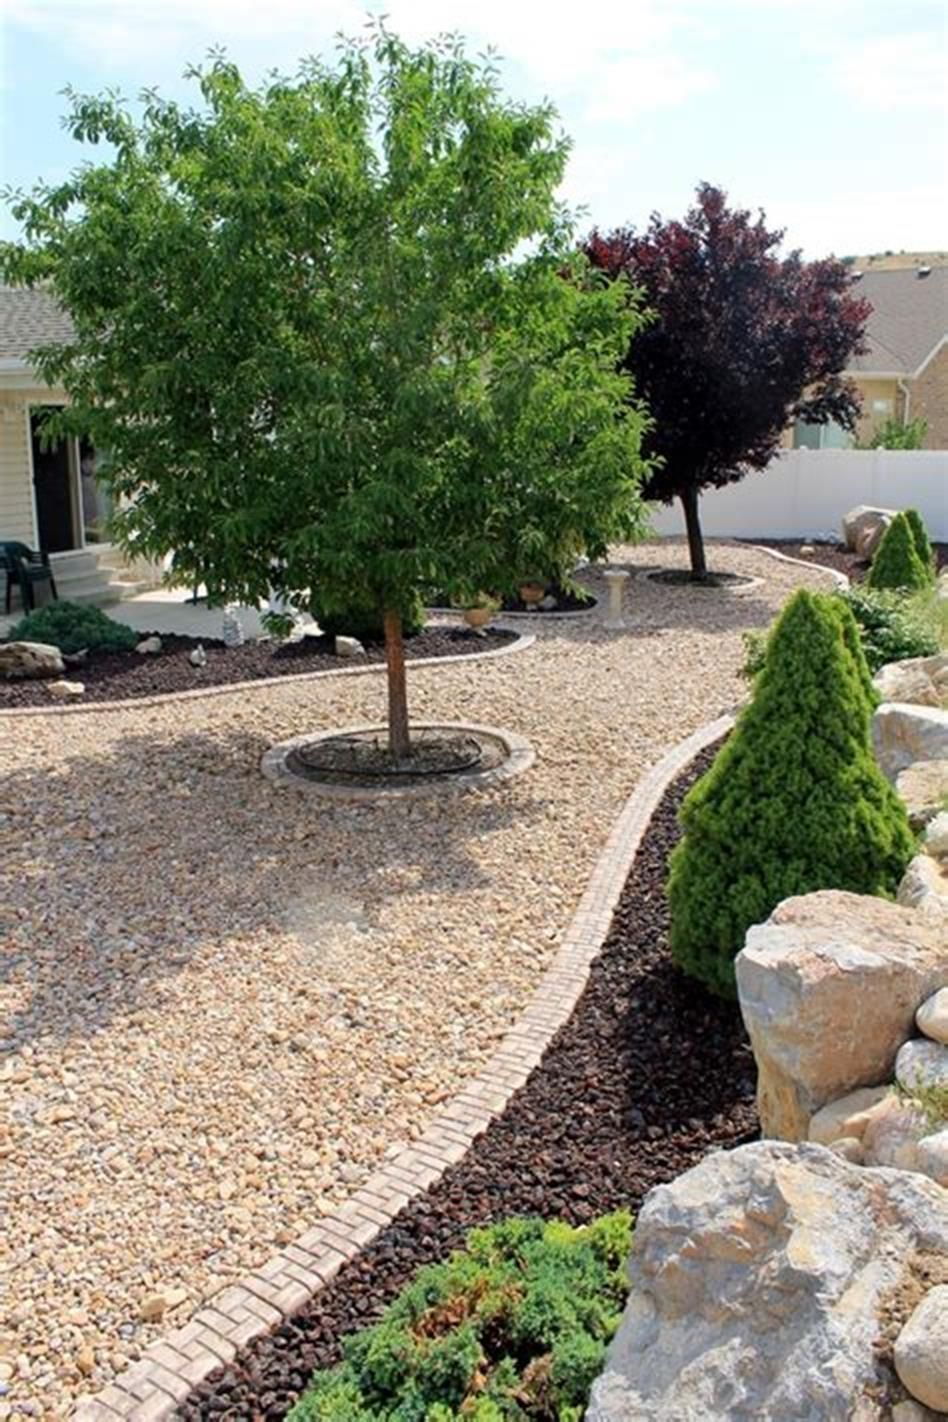 42 Best Front Yard Landscaping Ideas On A Budget Low Within Front Yard Desert Land In 2020 Landscaping With Rocks Rock Garden Landscaping Front Yard Landscaping Design